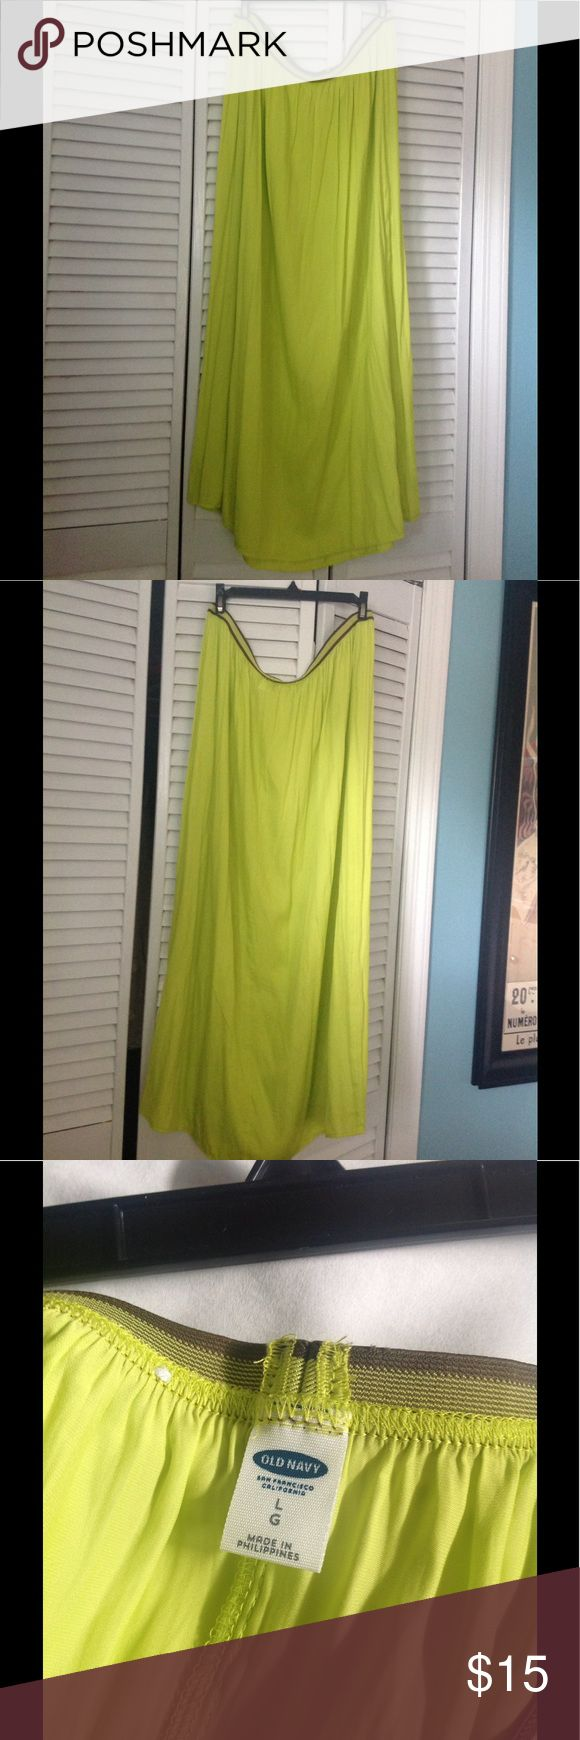 Chartreuse Maxi Skirt Chartreuse Color Maxi Skirt w/brown stripe waist band Old Navy Skirts Maxi